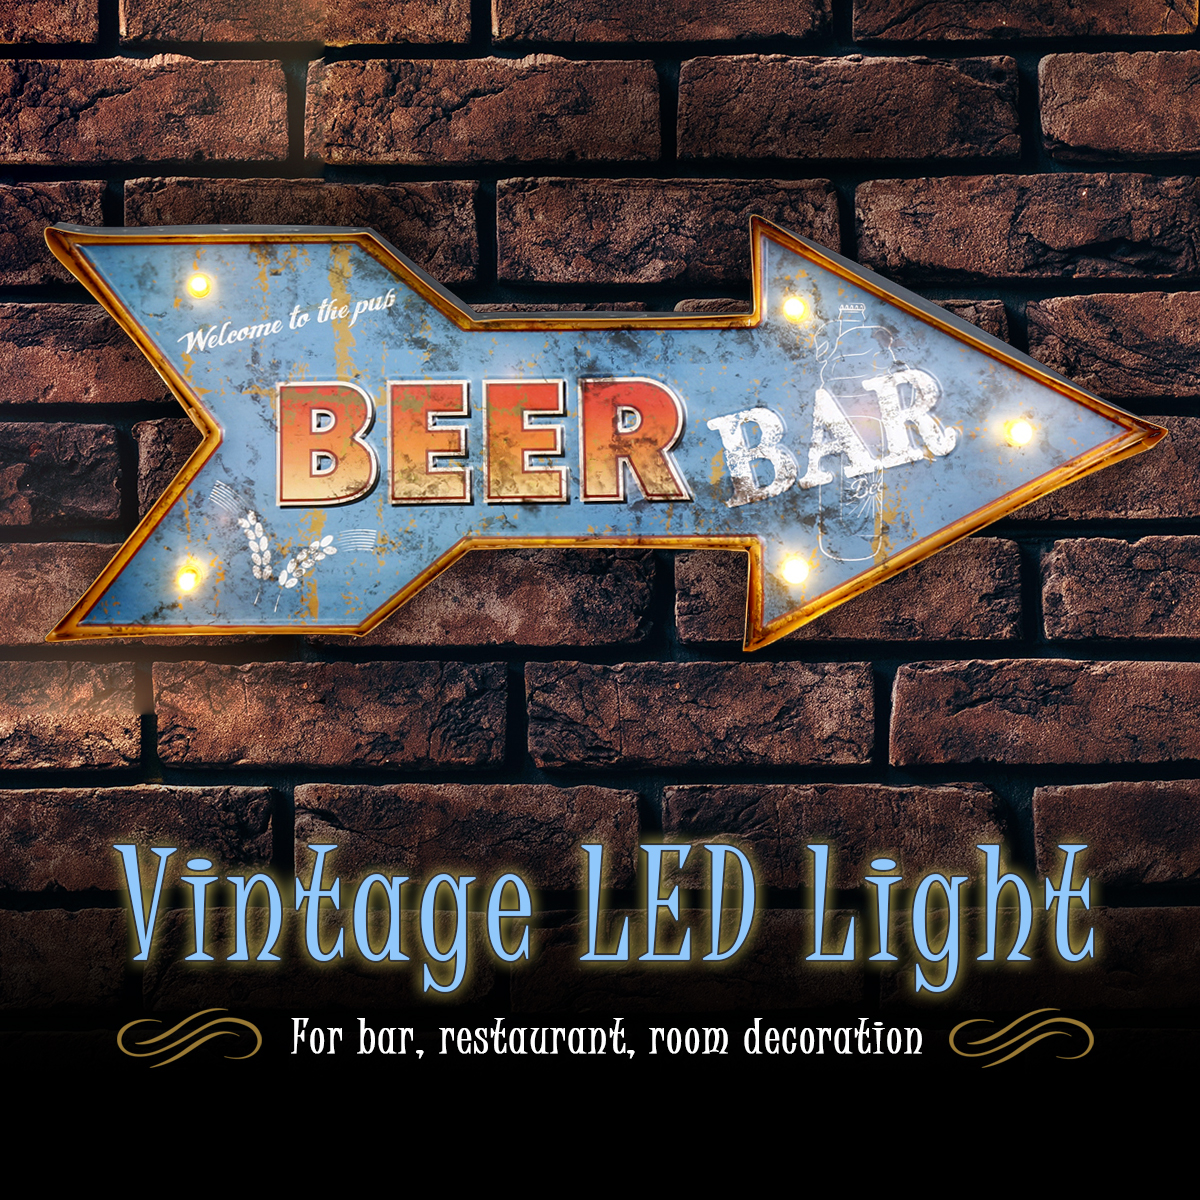 LED Mental Light Vintage Arrow Beer Sign Bar Game Room Wall Hangings Decorations Home Decor брюки спортивные atplay atplay mp002xb002mt